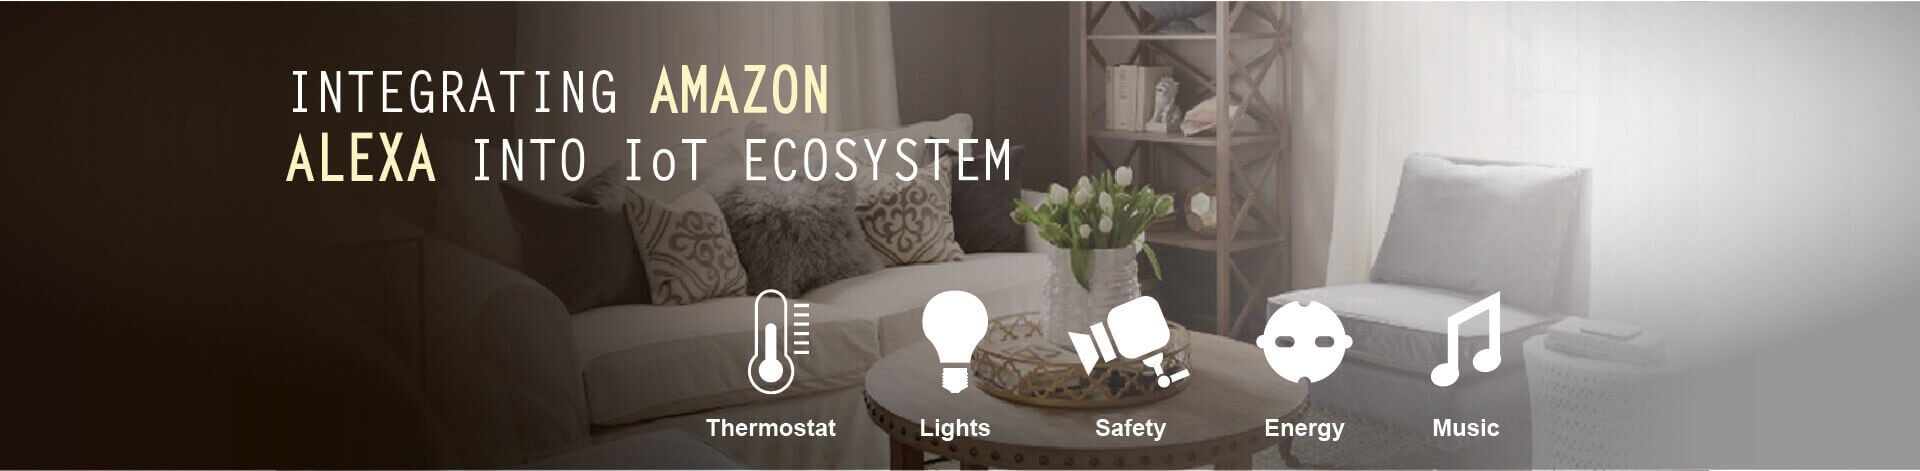 Integrating Amazon Alexa into IoT ecosystem